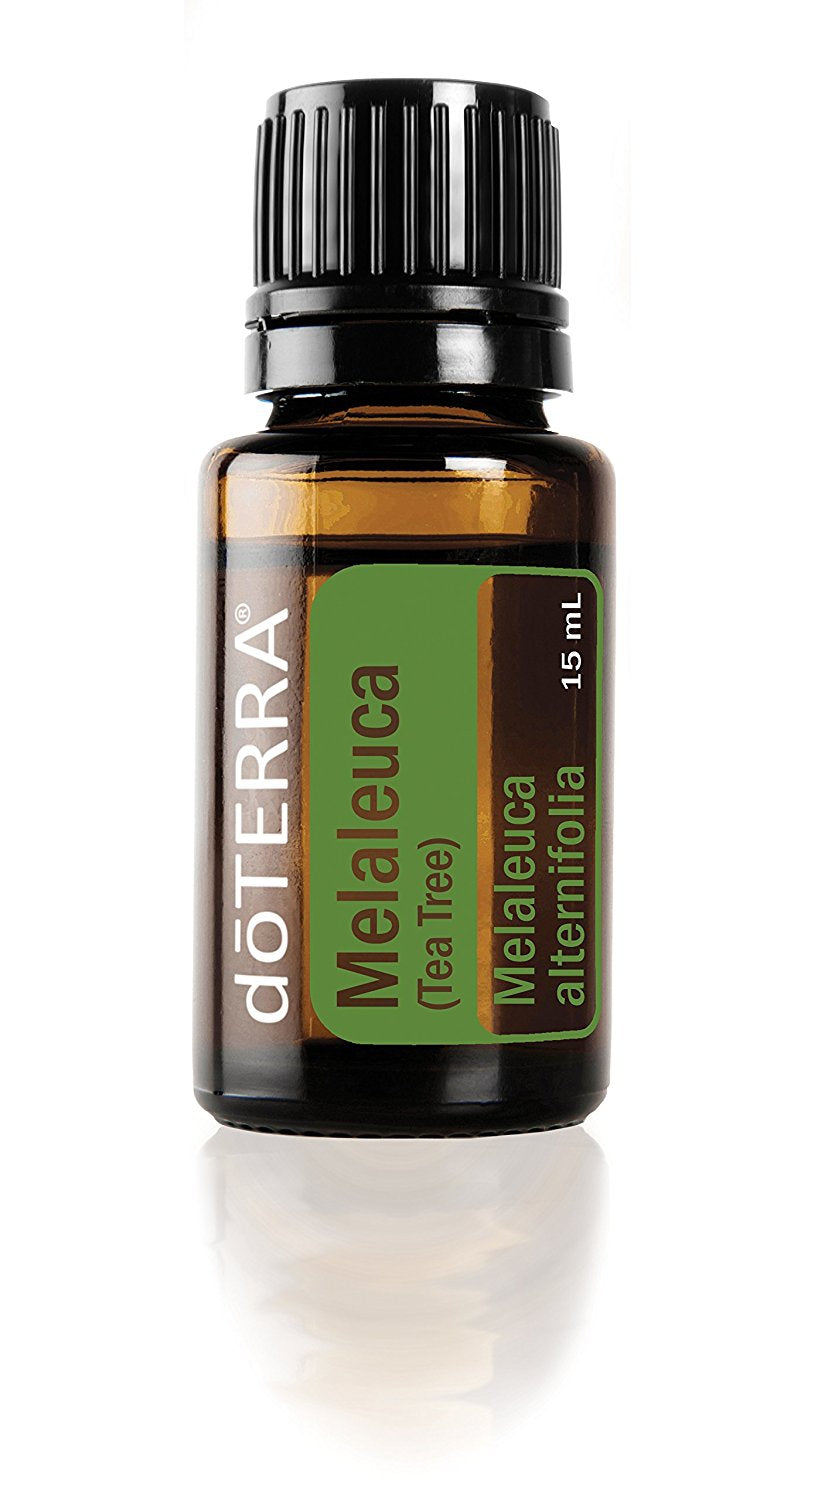 doTERRA Melaleuca (Tea Tree) Essential Oil - 15 mL